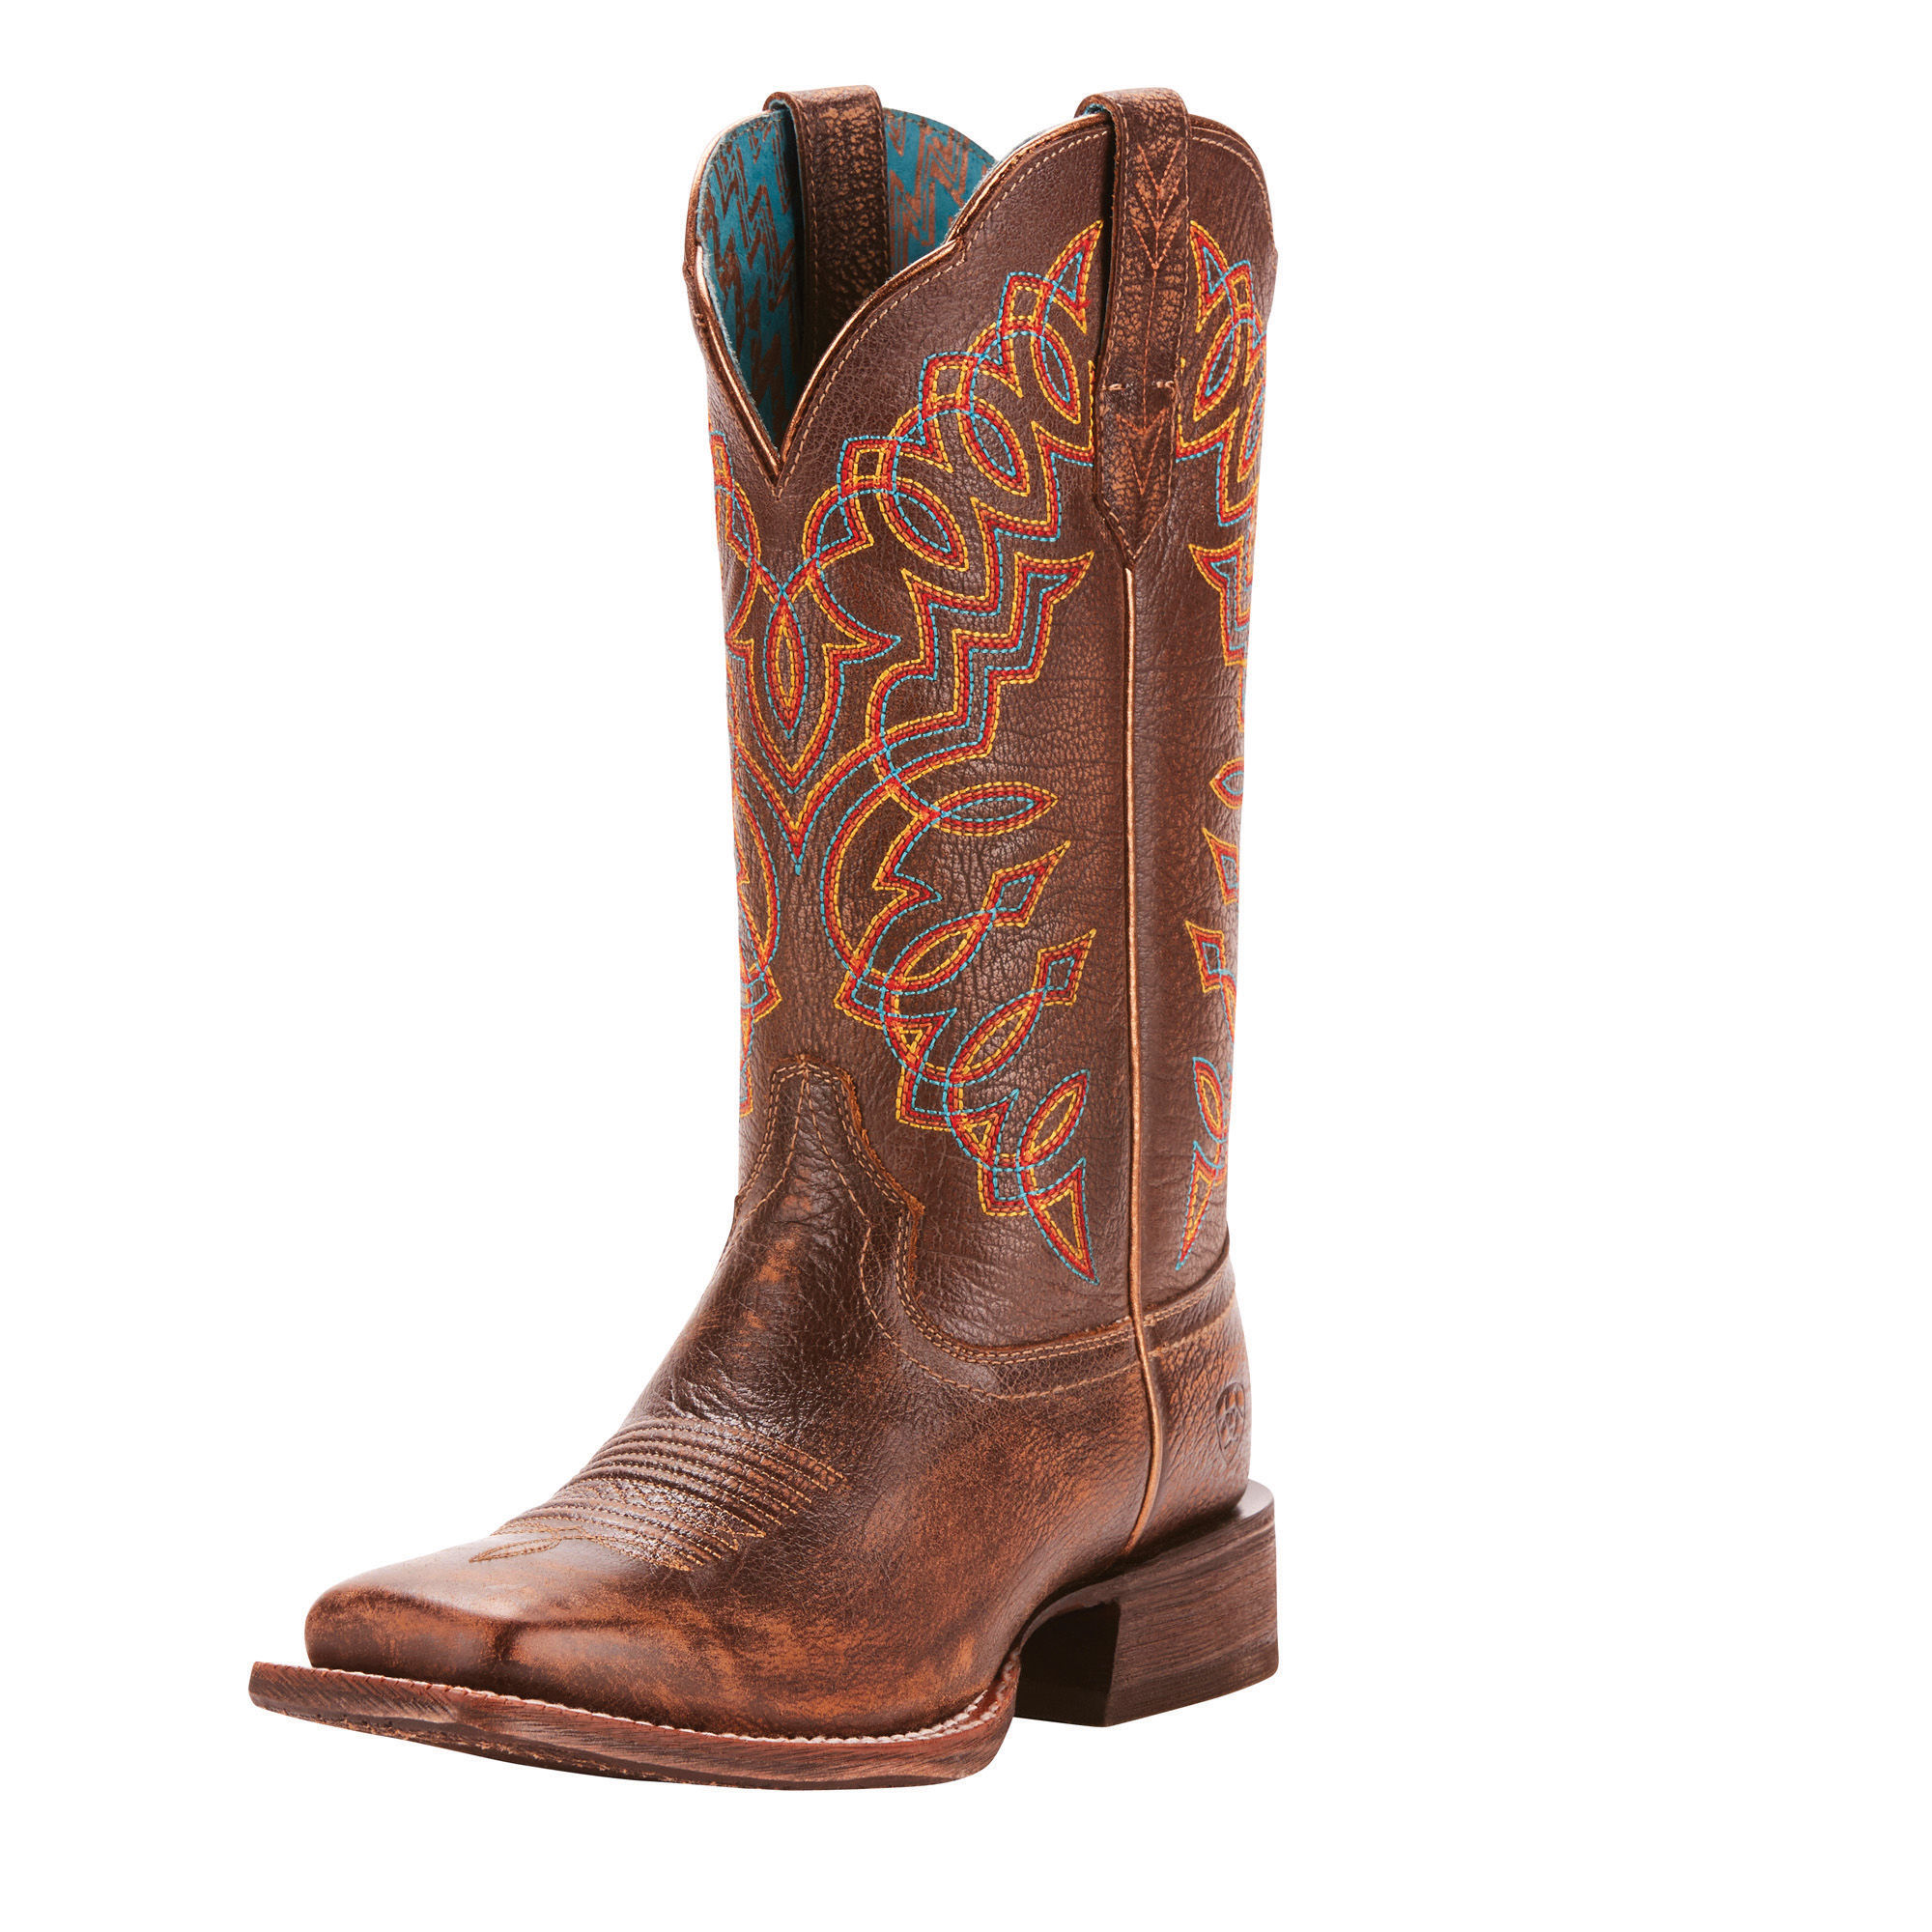 Wear Ariat boots women shoes   in stylish way